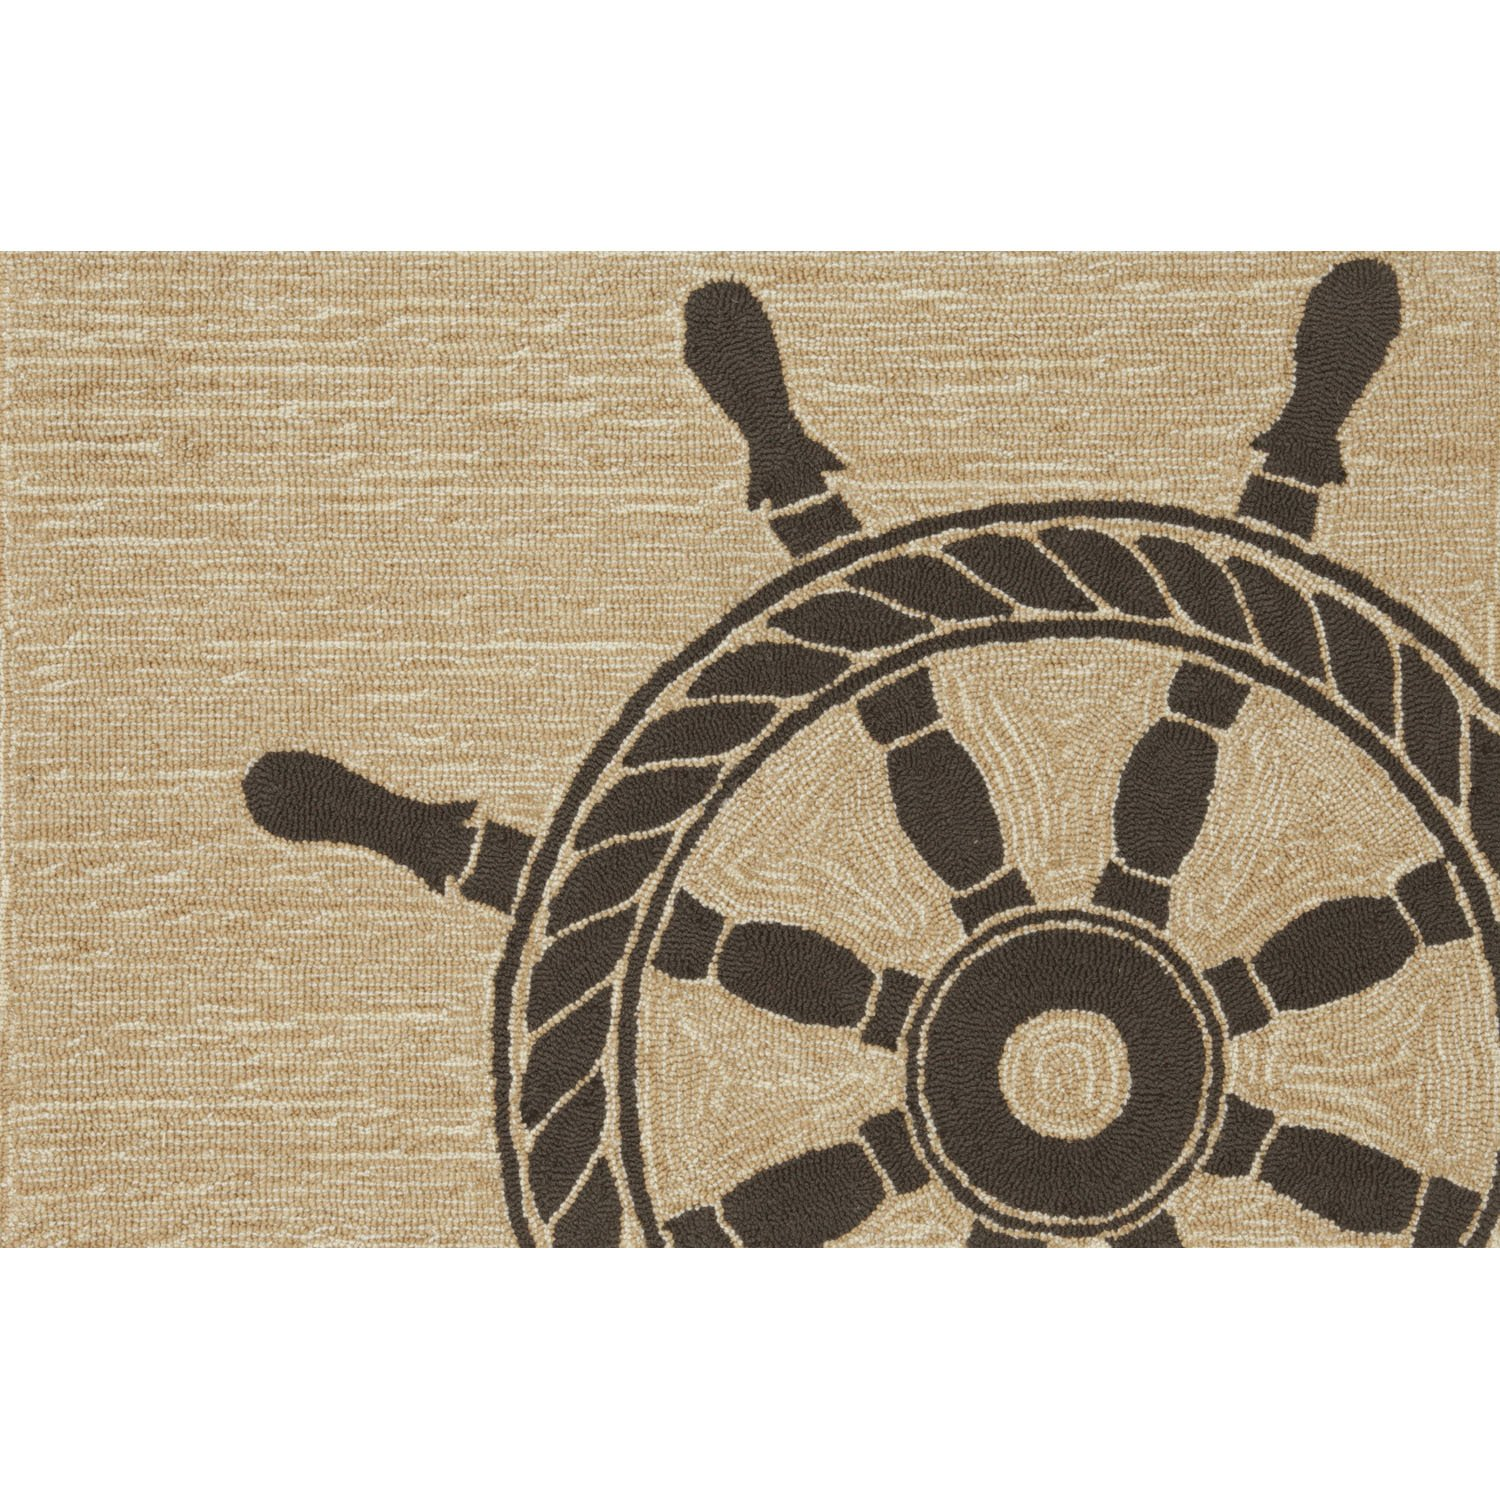 Liora Manne FT112A34948 Whimsy Skipper Rug, 20x 30, Black 20x 30 The Trans Ocean Group